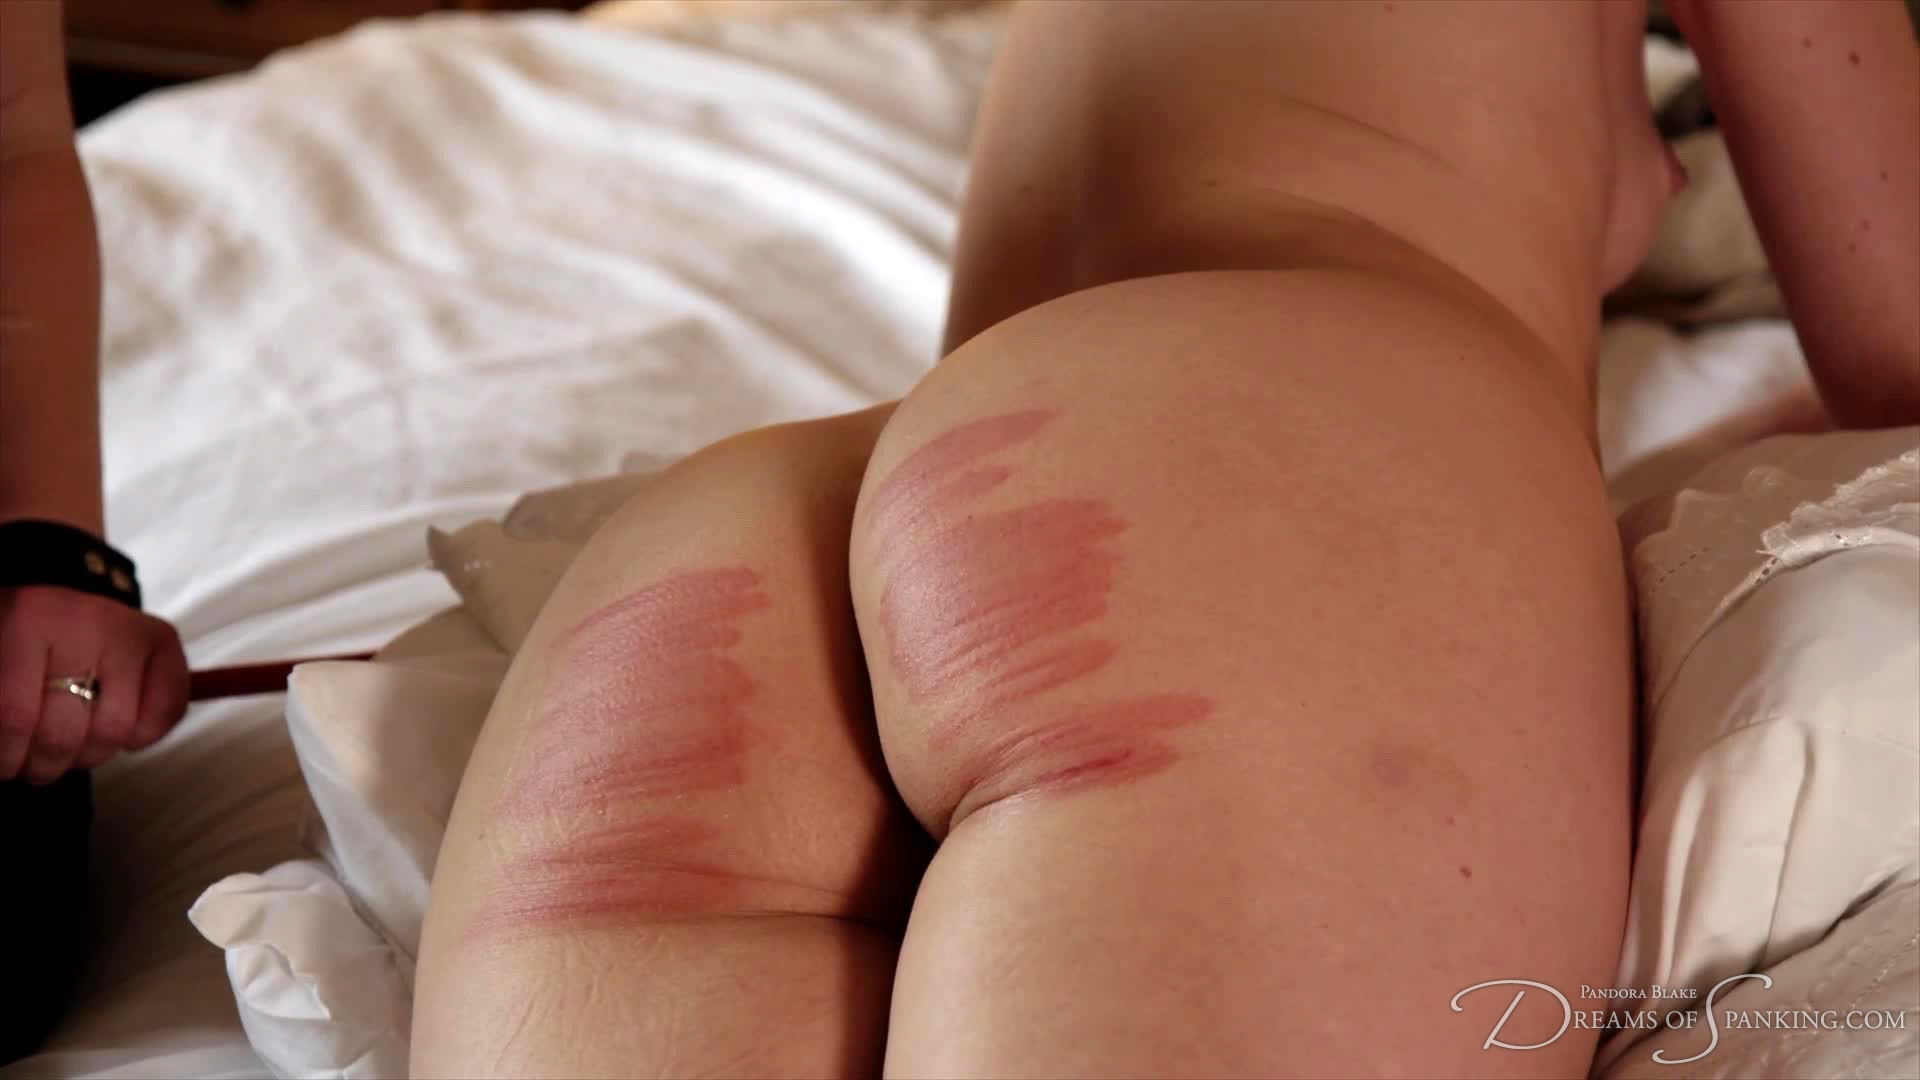 Ariels caned bottom at the end of her sponsored caning video to raise money for Backlash UK